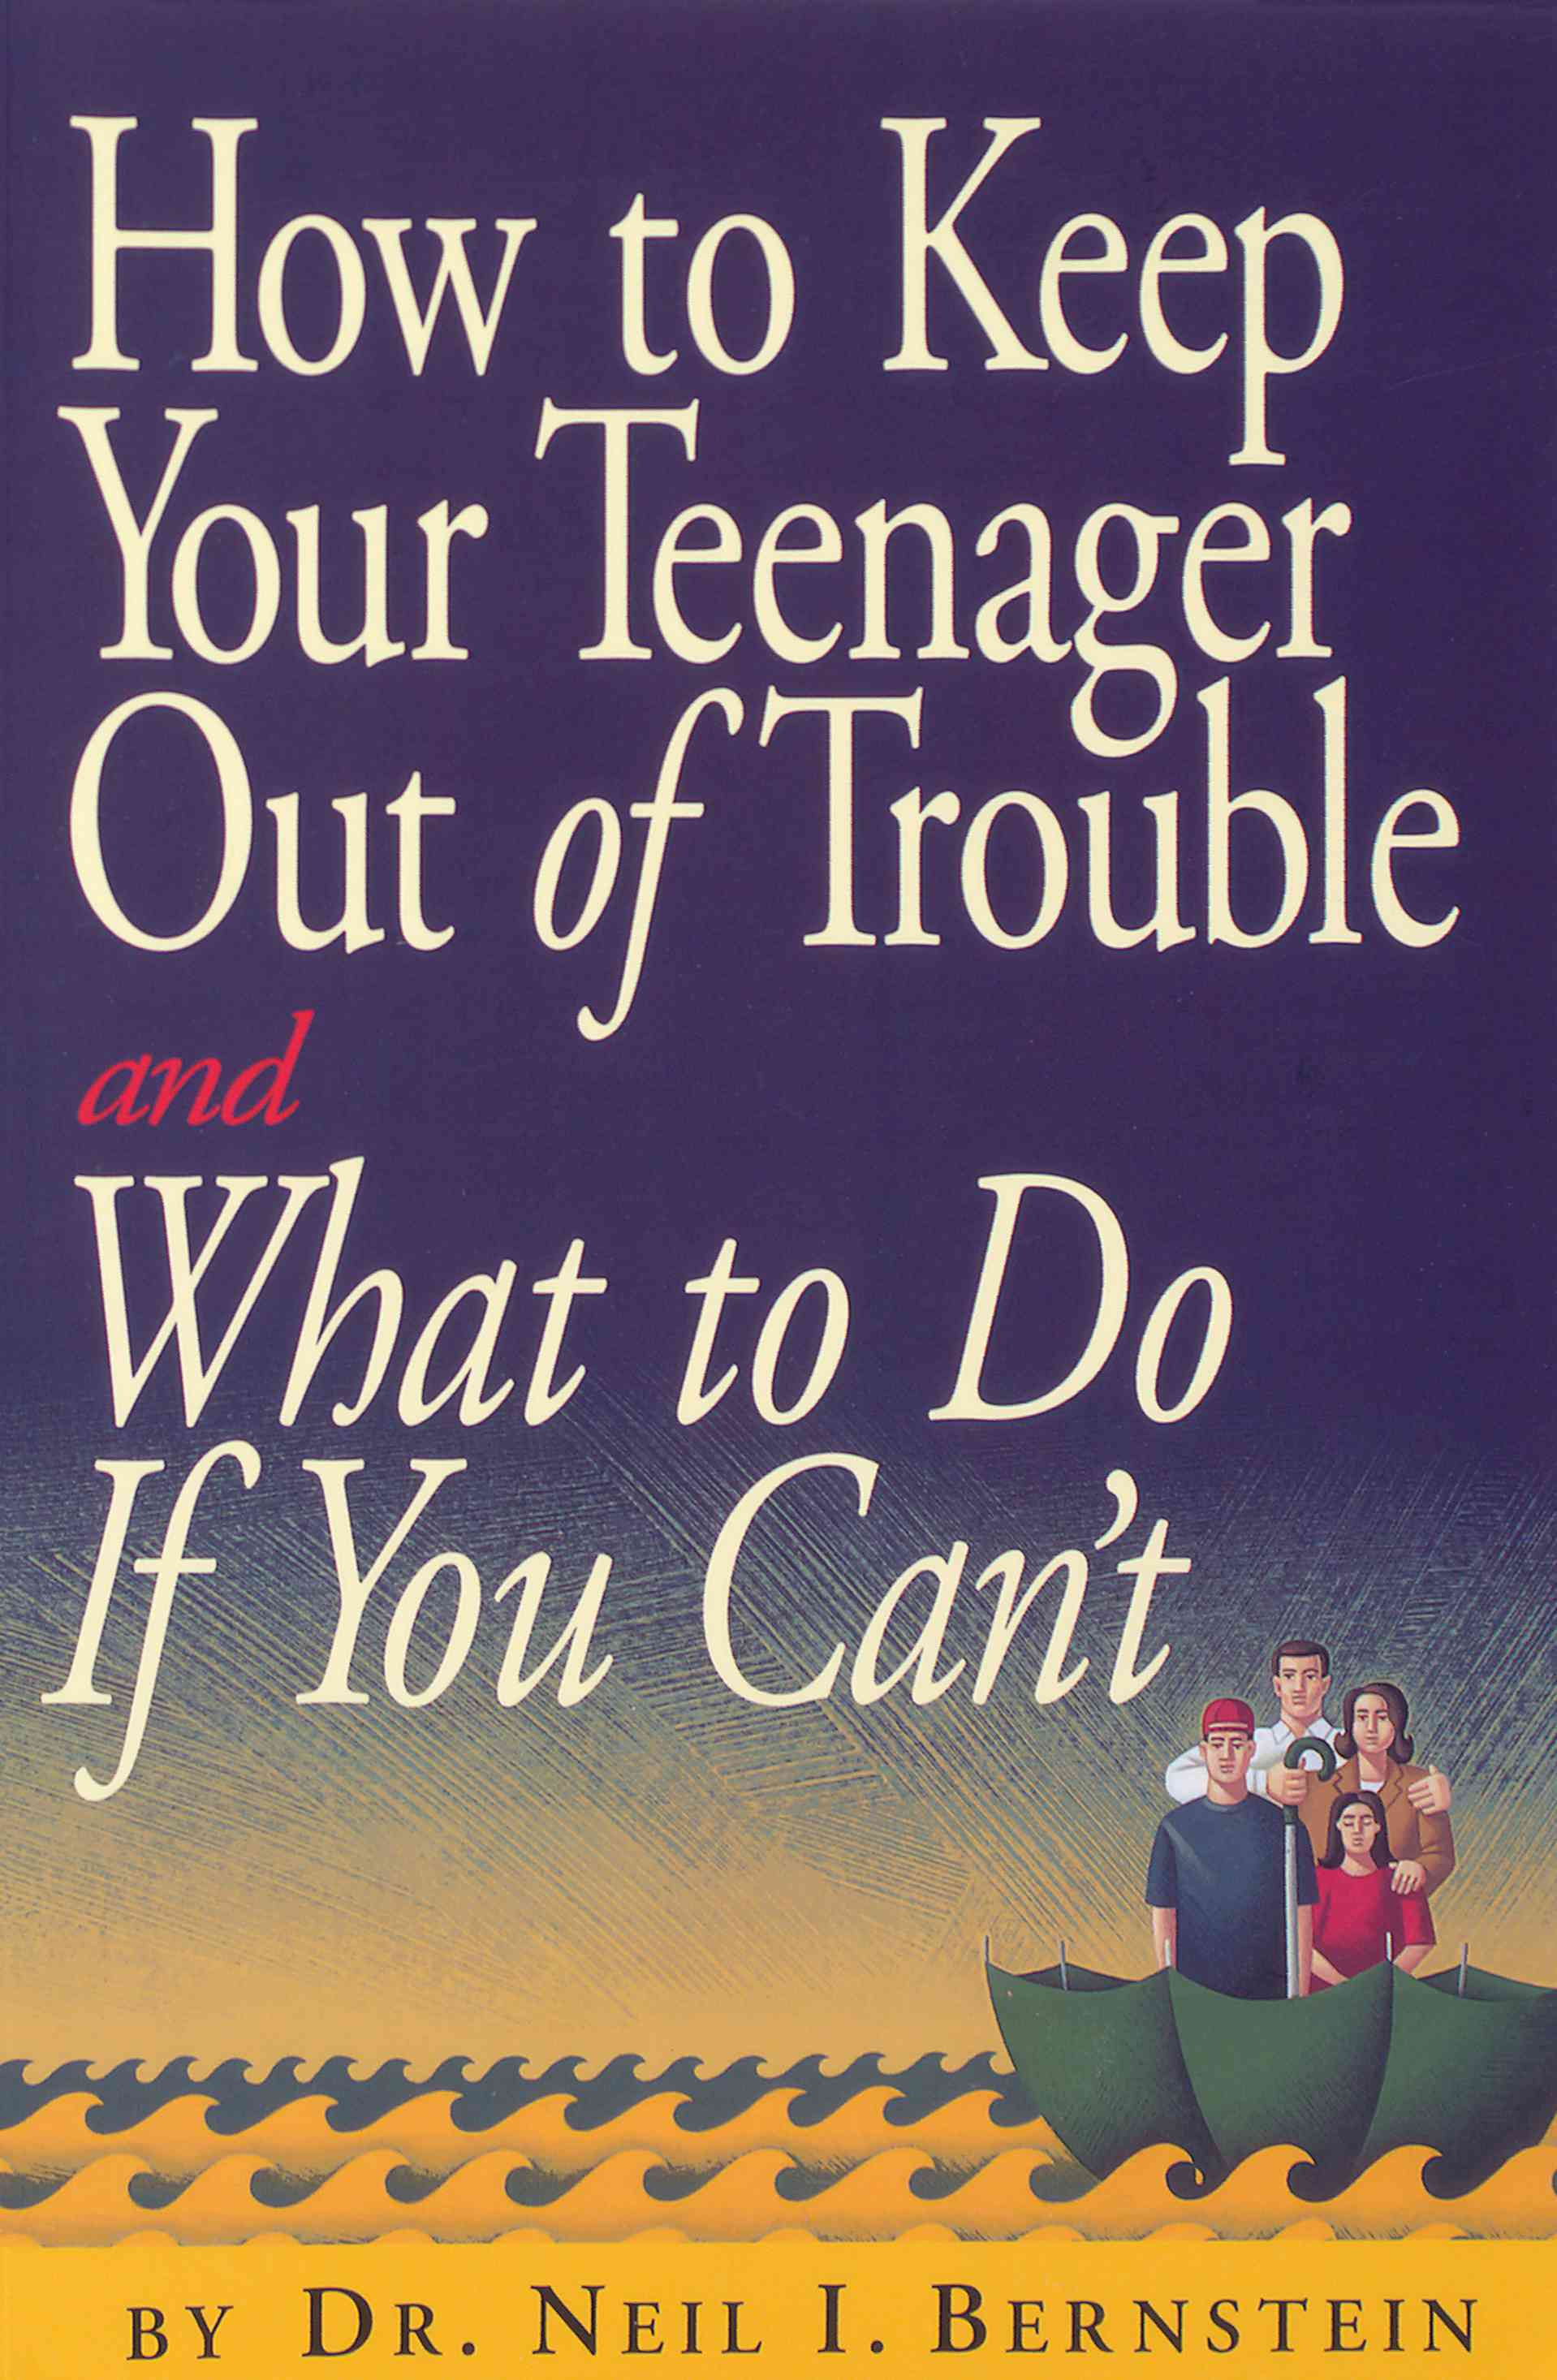 How to Keep Your Teenager Out of Trouble and What to Do If You Can't (Paperback)